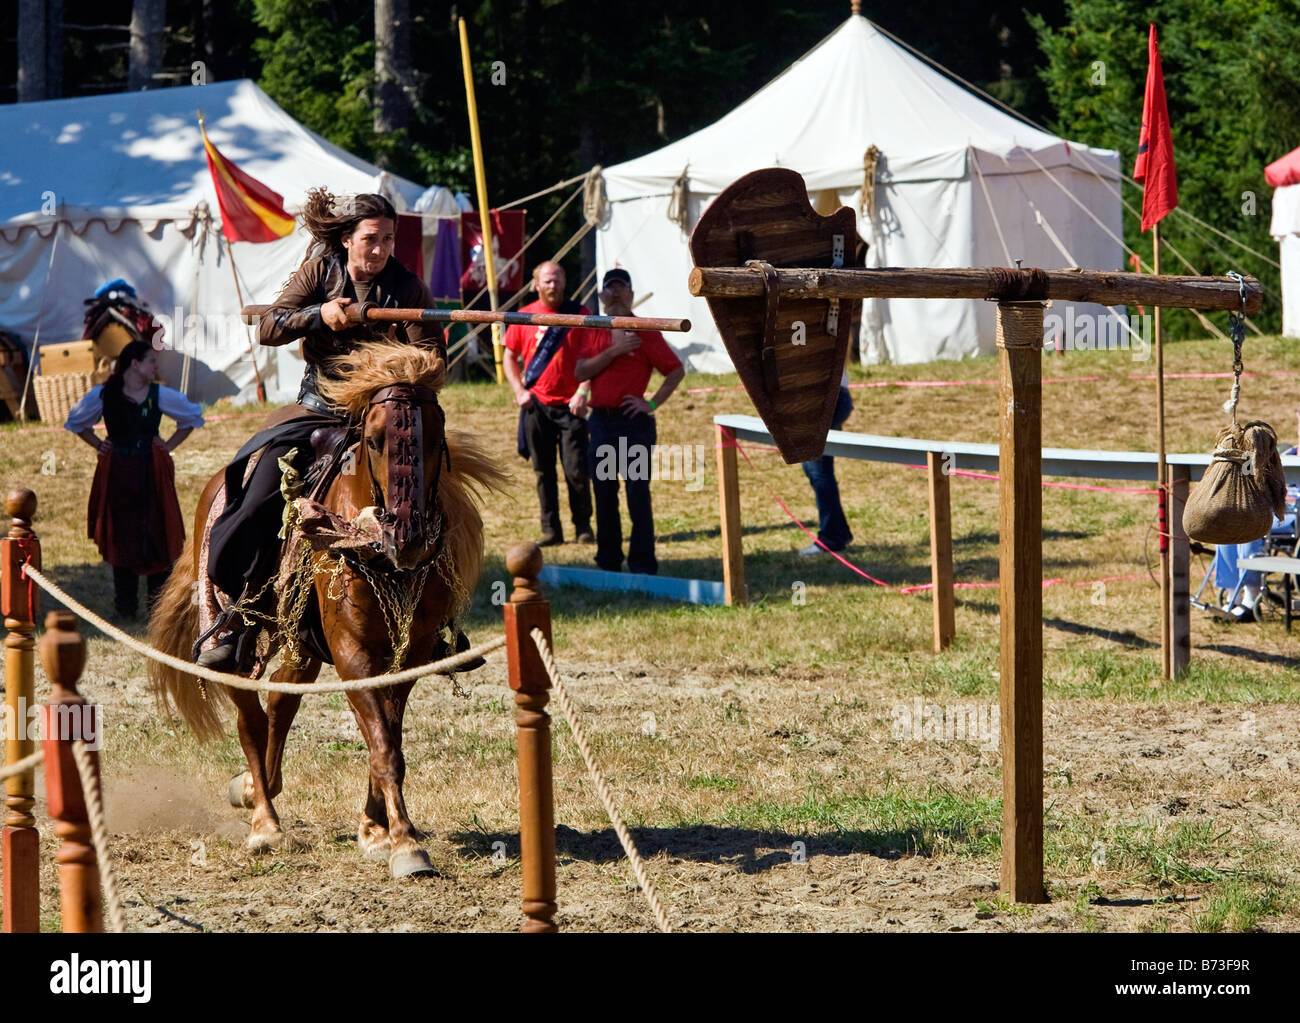 Image of man dressed in Renaissance style clothing riding a horse and carrying a lance in a jousting tournament - Stock Image